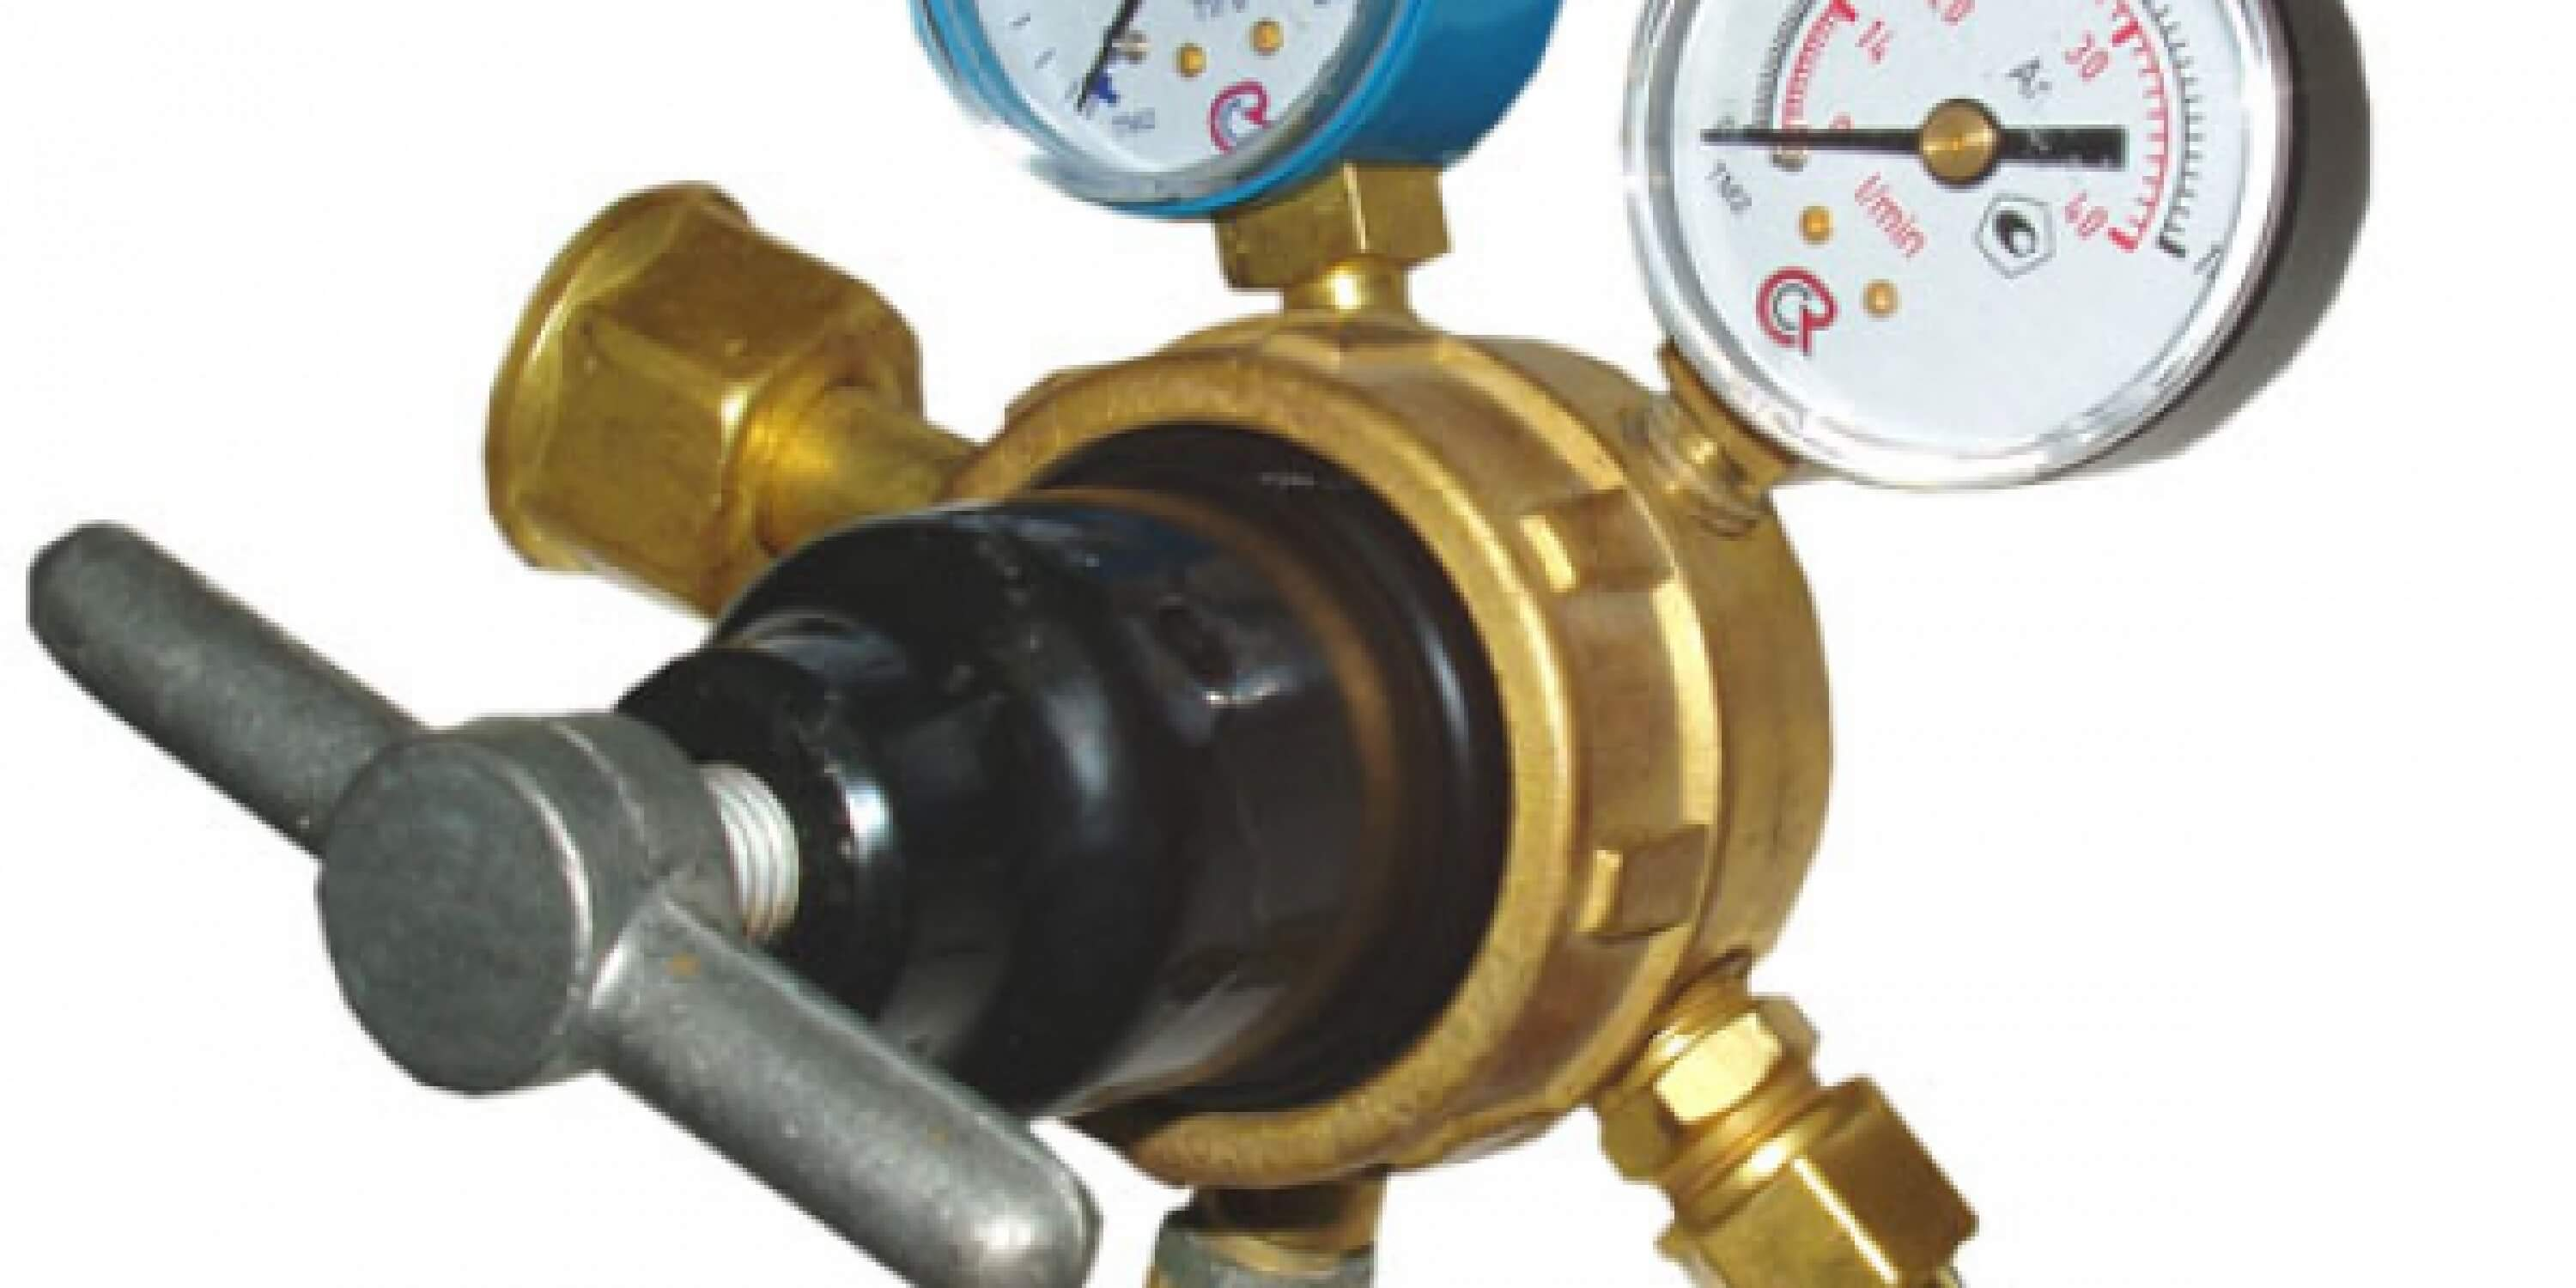 GAS PRESSURE REGULATOR RDM 150-300-К01  Russian National product classification code 37 4250  SPECIFICATION No. TS 3742-017-12317765-97